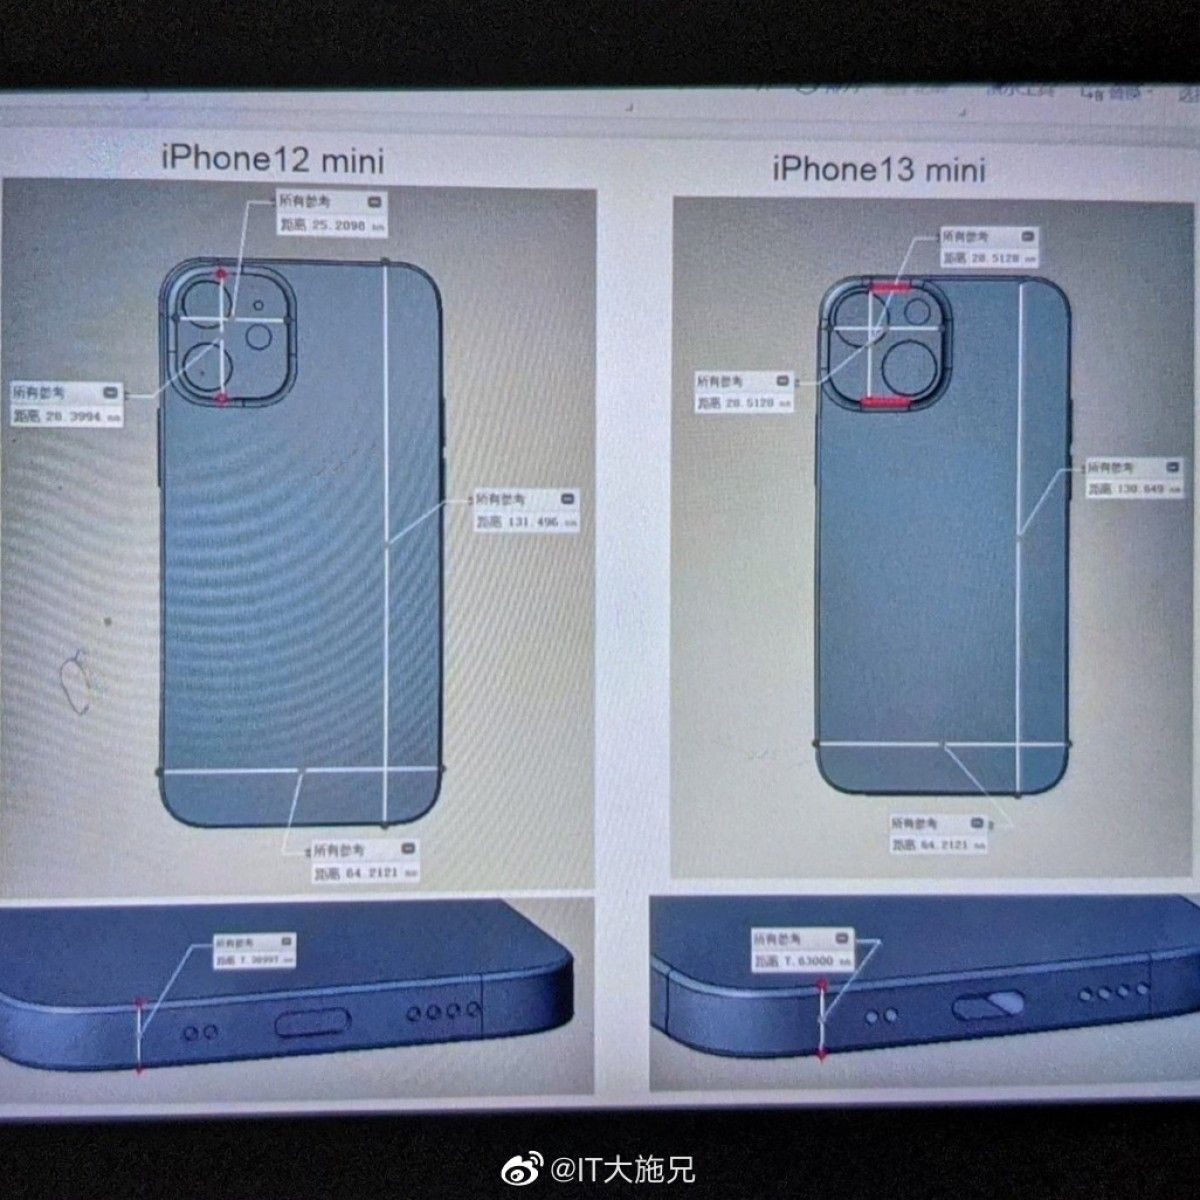 iPhone 13 mini leaks reveal that its design is similar to ...